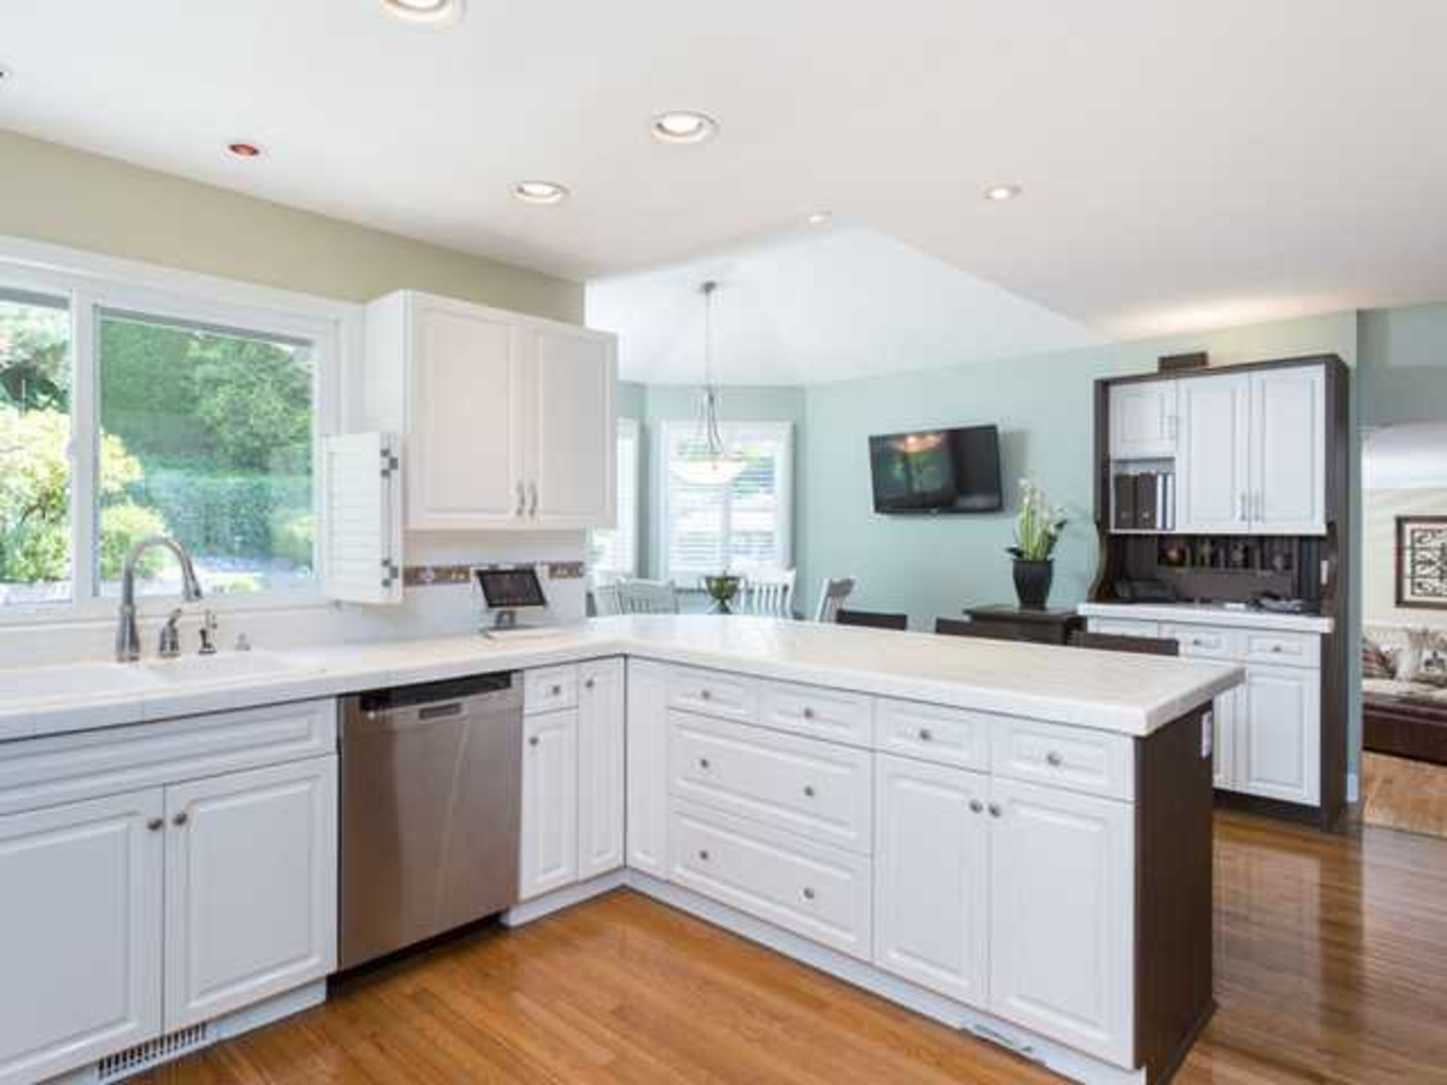 Kitchen at 2654 Fortress Drive, Citadel PQ, Port Coquitlam